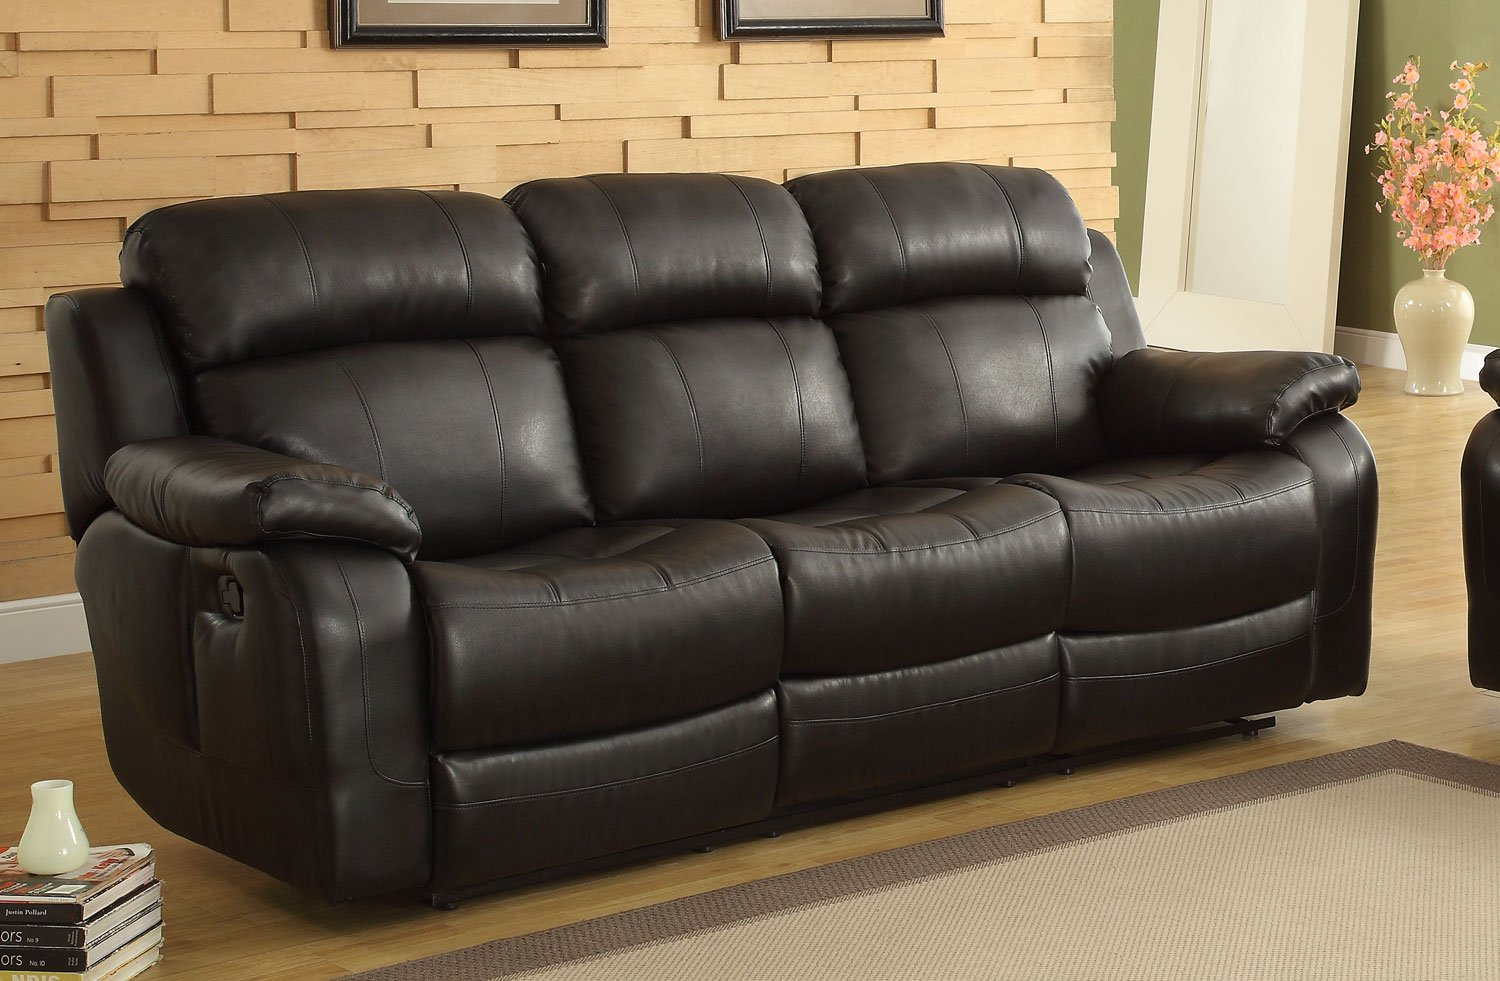 Homelegance Marille Black Double Reclining Sofa With Center Drop